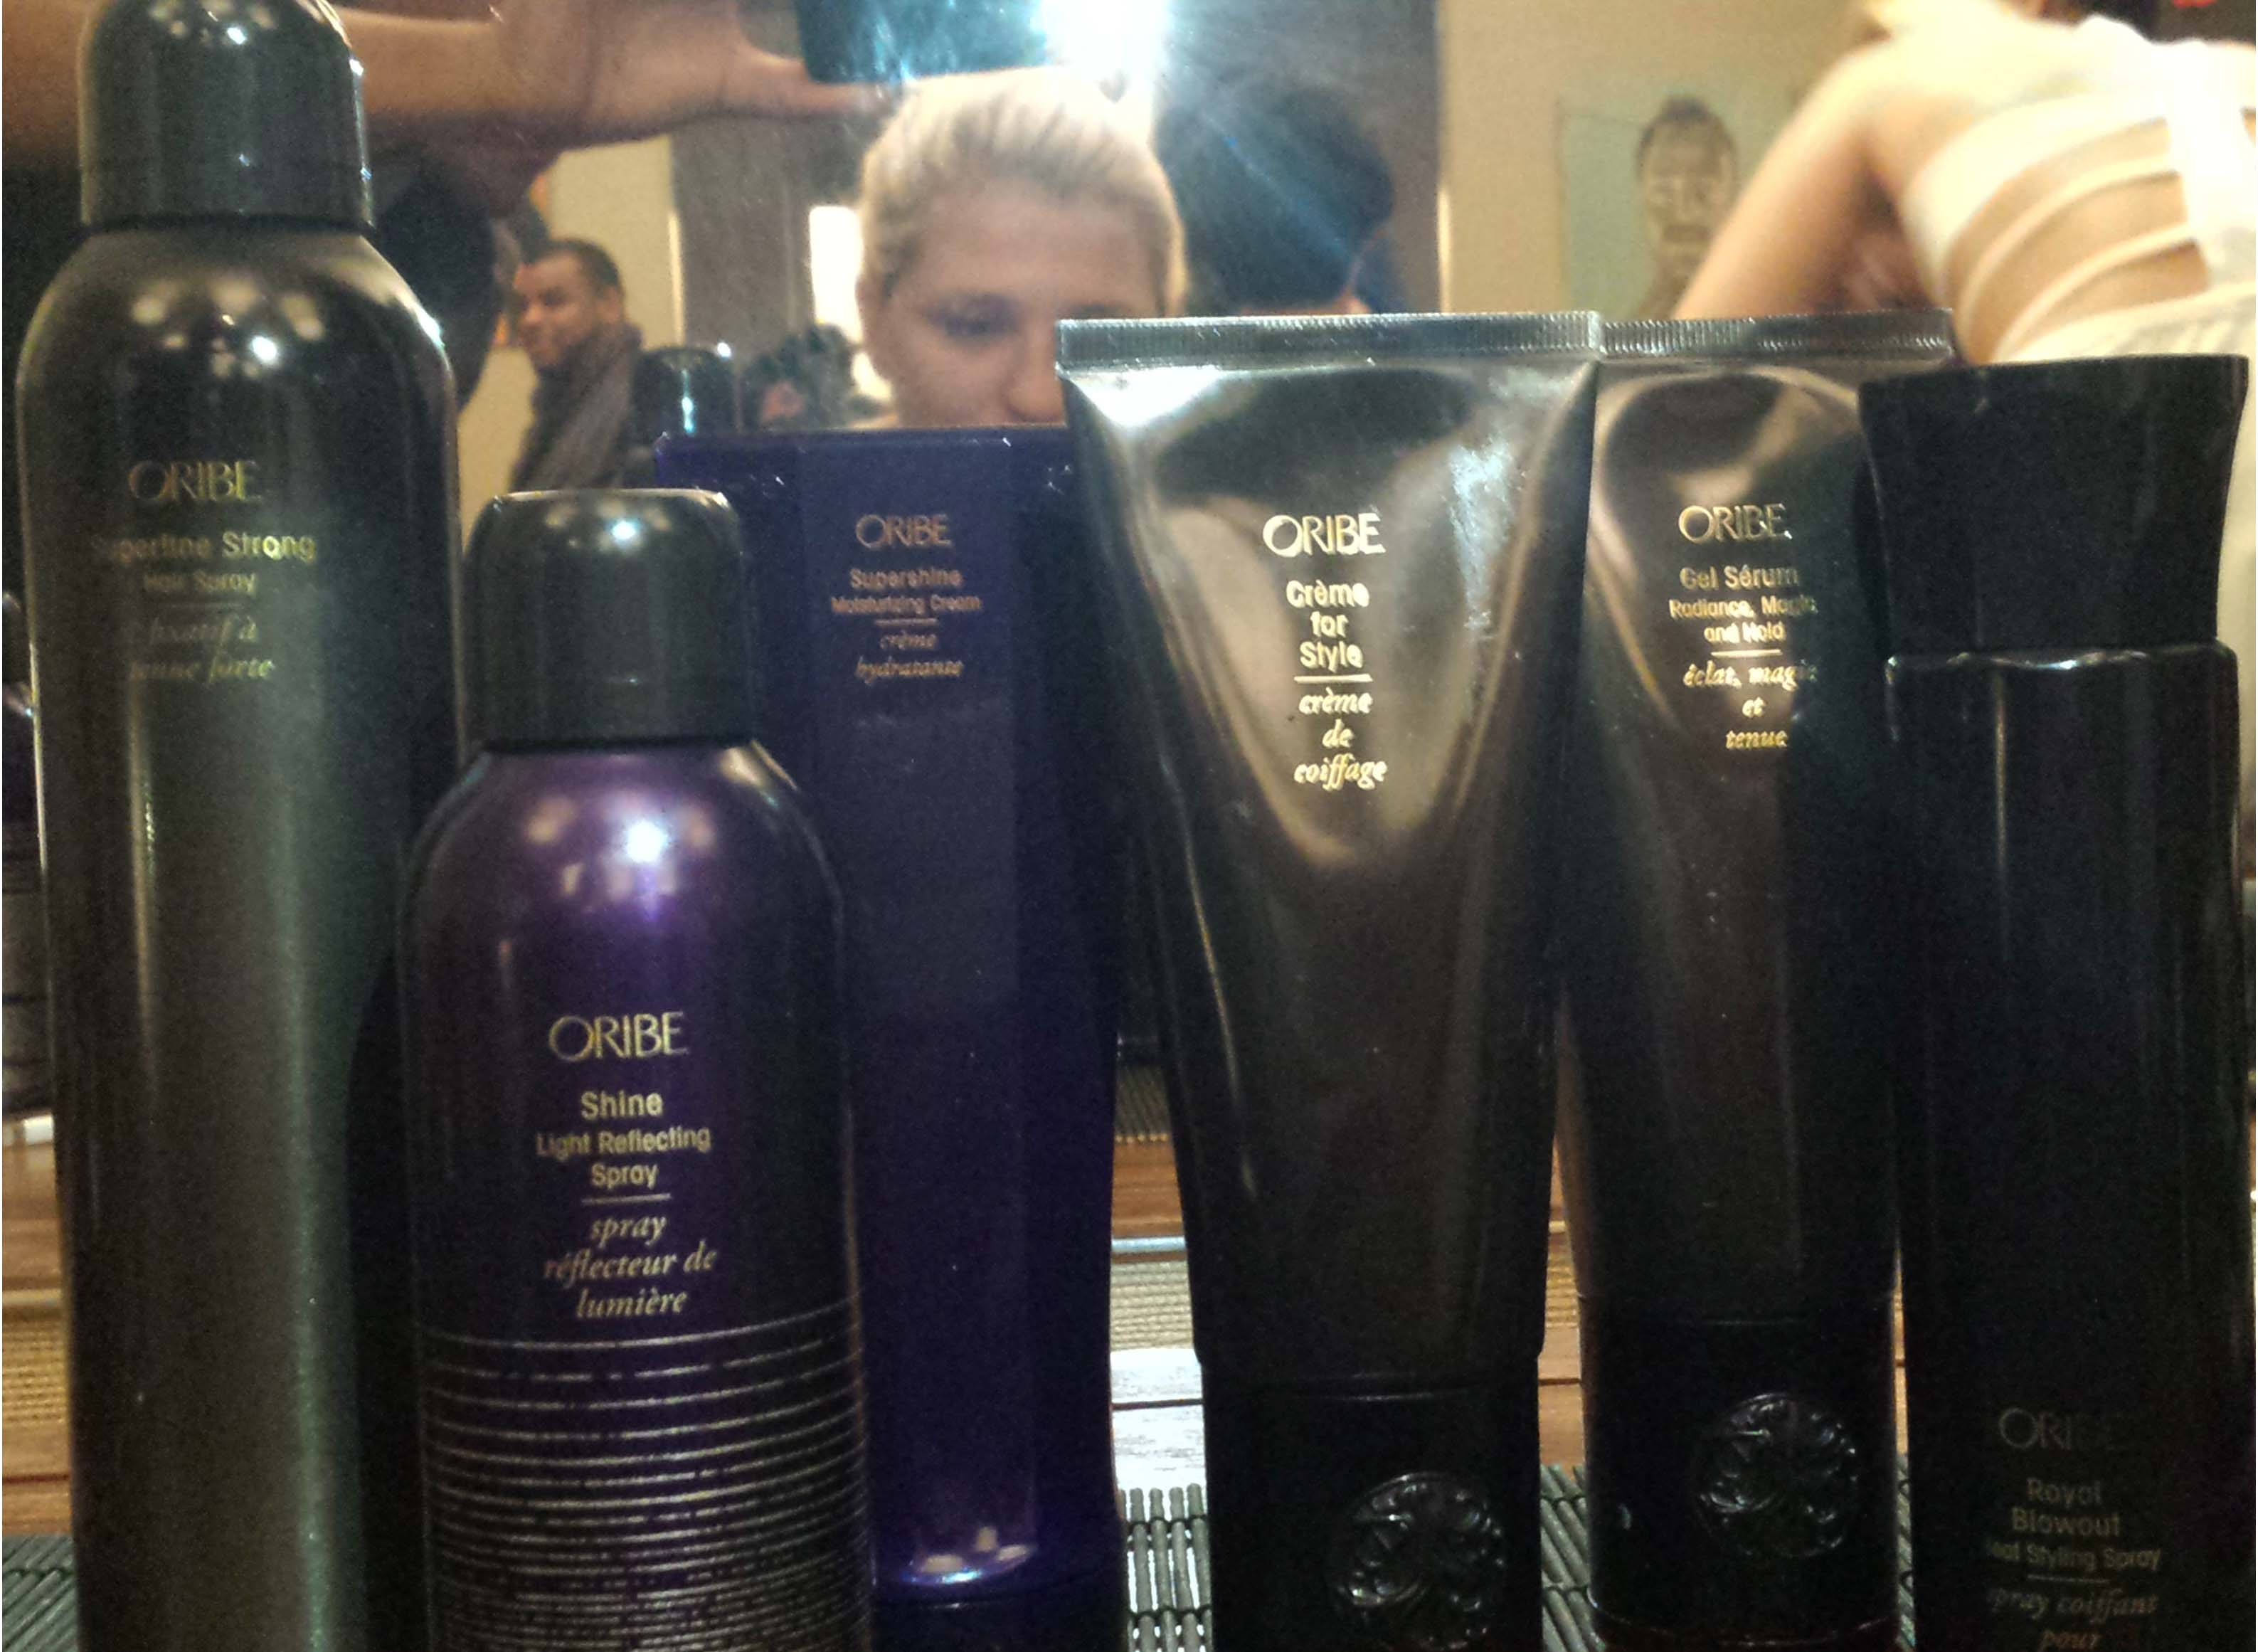 Oribe products Chuck used